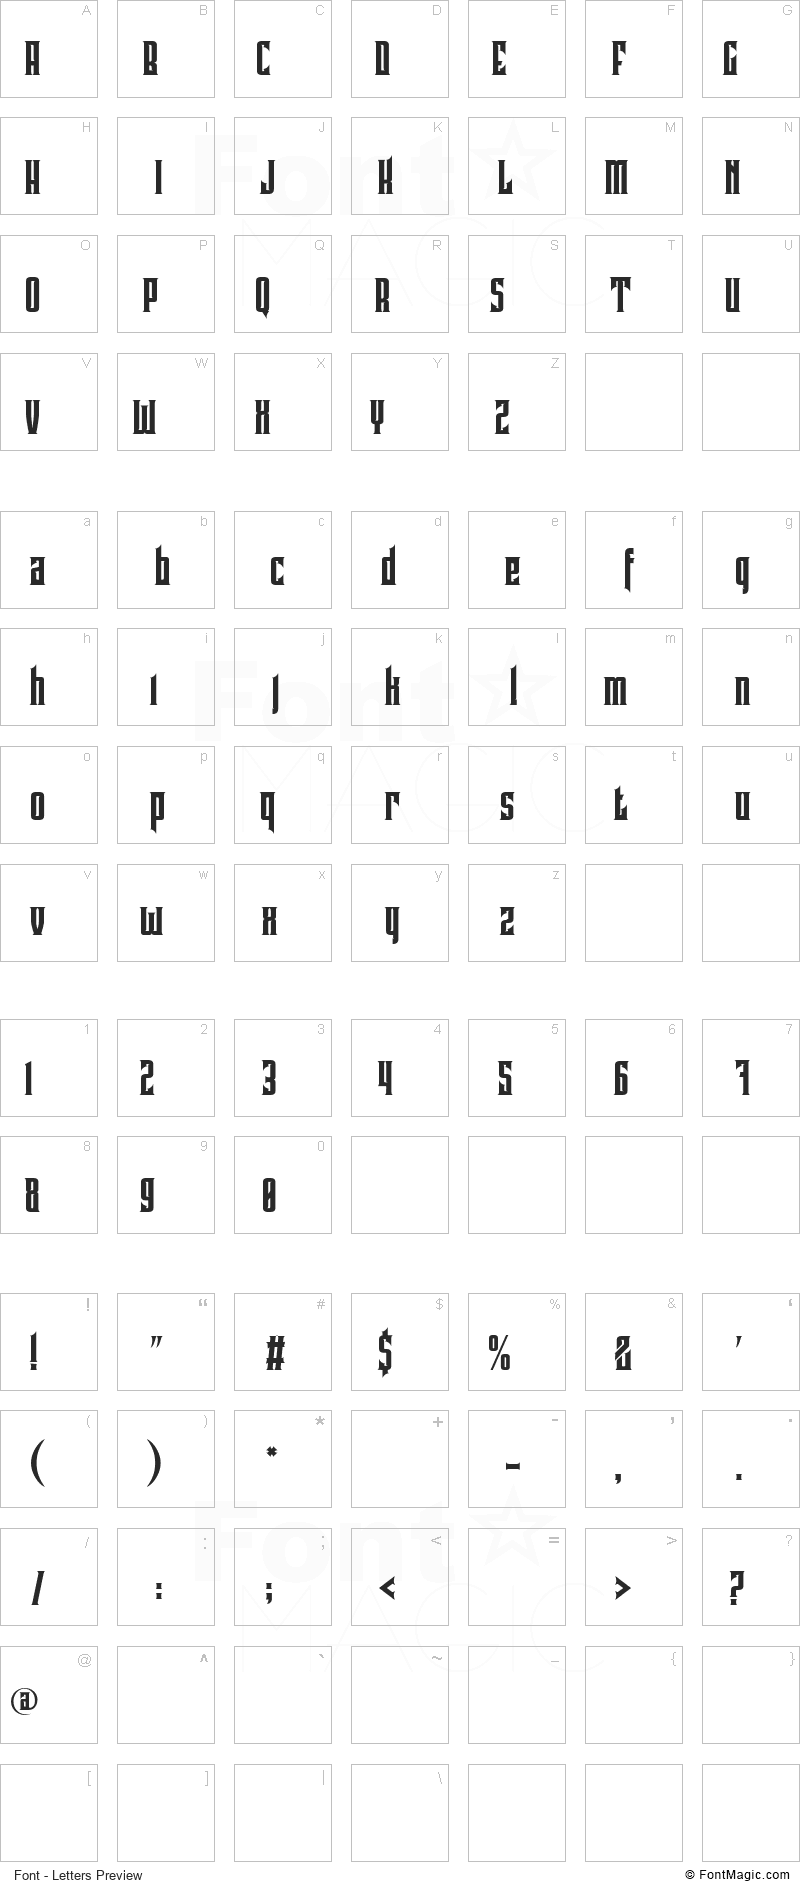 Pindunk Font - All Latters Preview Chart